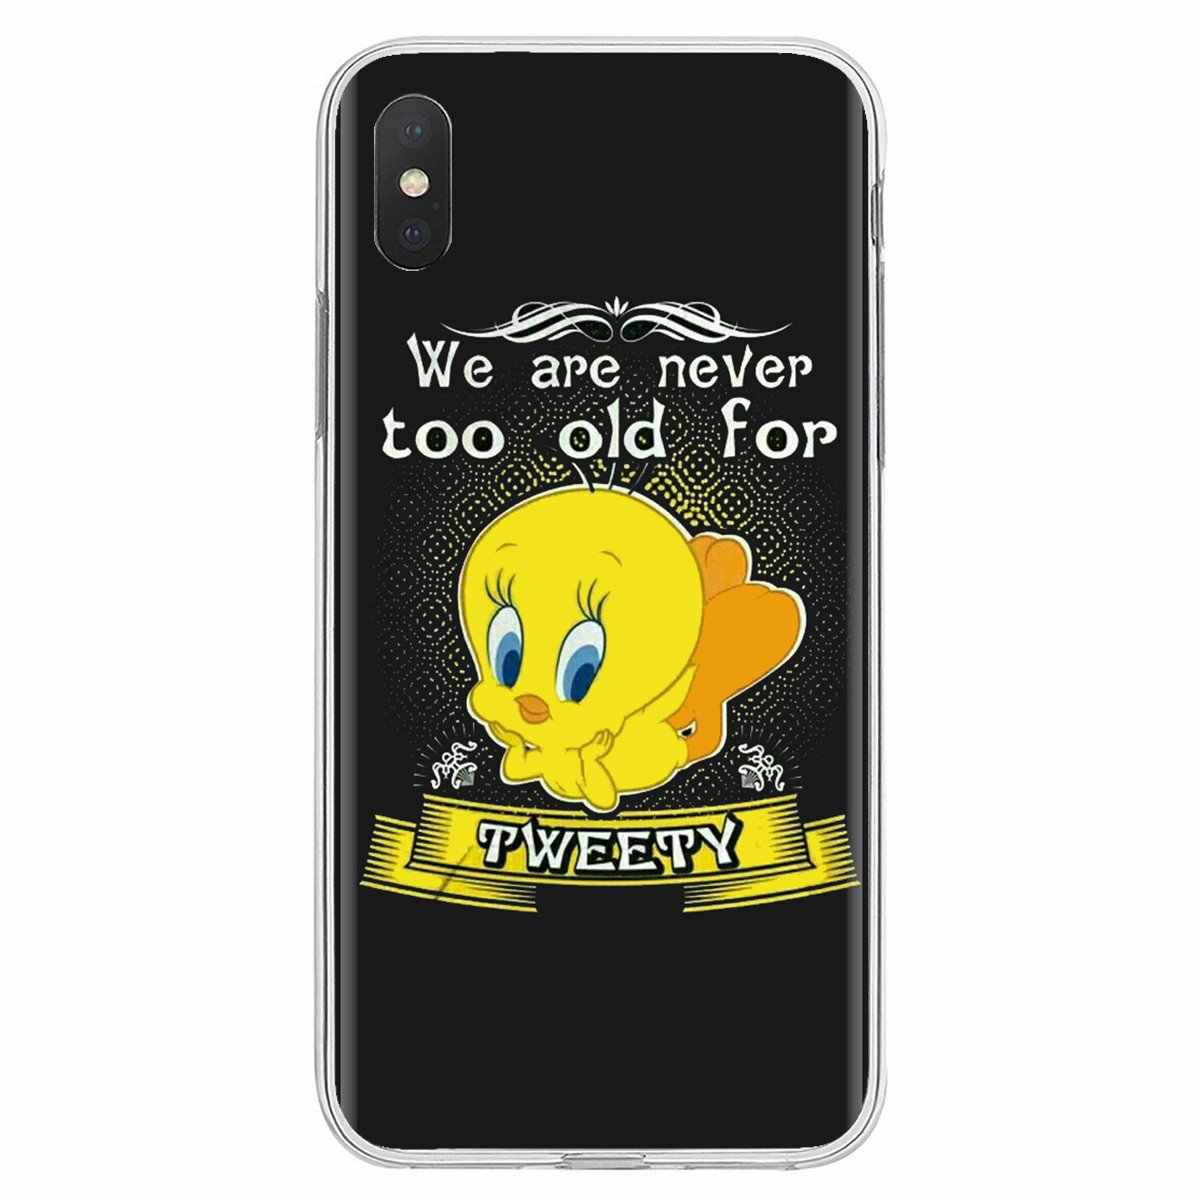 looney tunes Tweety Bird For iPhone 11 Pro 4 4S 5 5S SE 5C 6 6S 7 8 X XR XS Plus Max For iPod Touch Colorful Silicone Phone Case